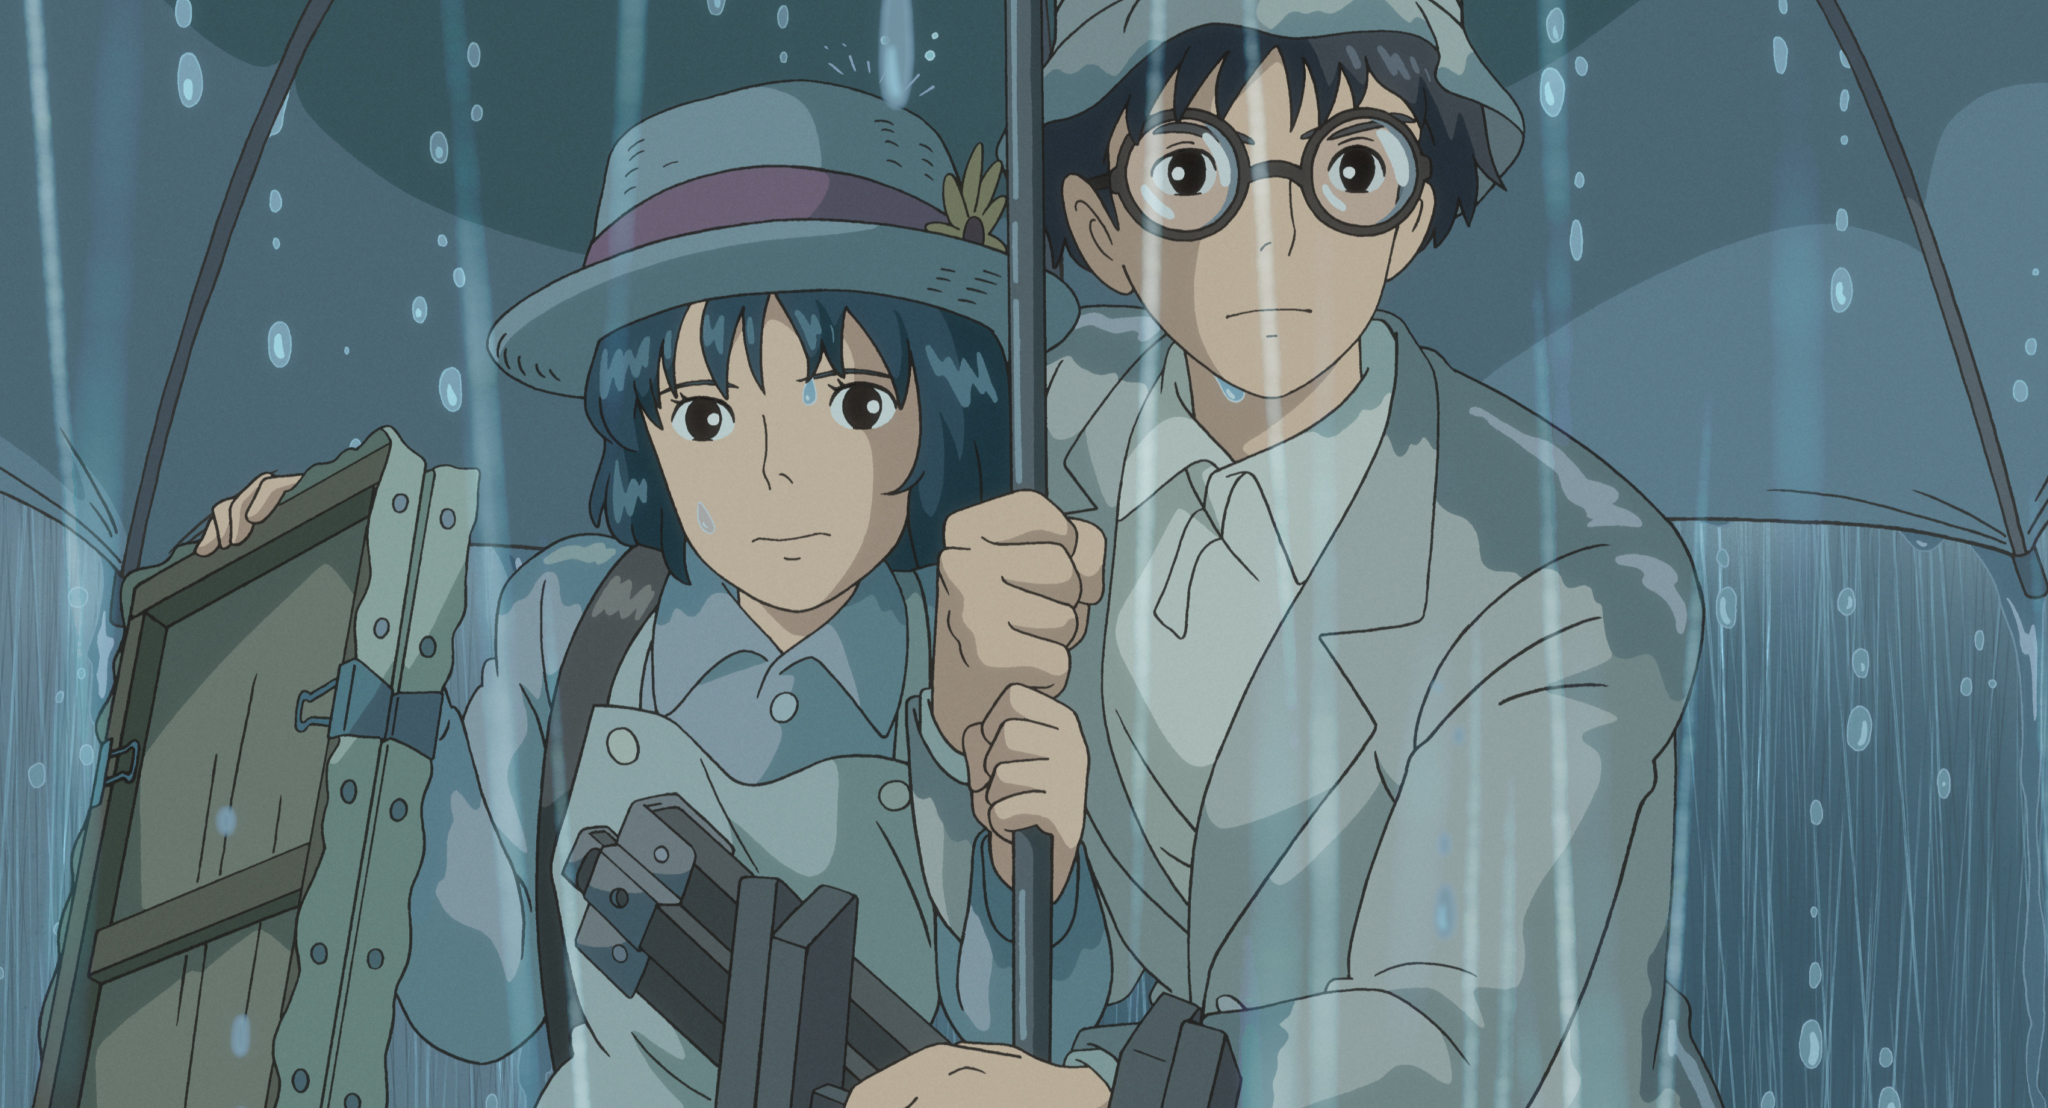 Jiro and Naoko in the Rain, promotional image from https://worldofentertainment.info/2014/03/09/pauls-review-of-the-wind-rises-2013/